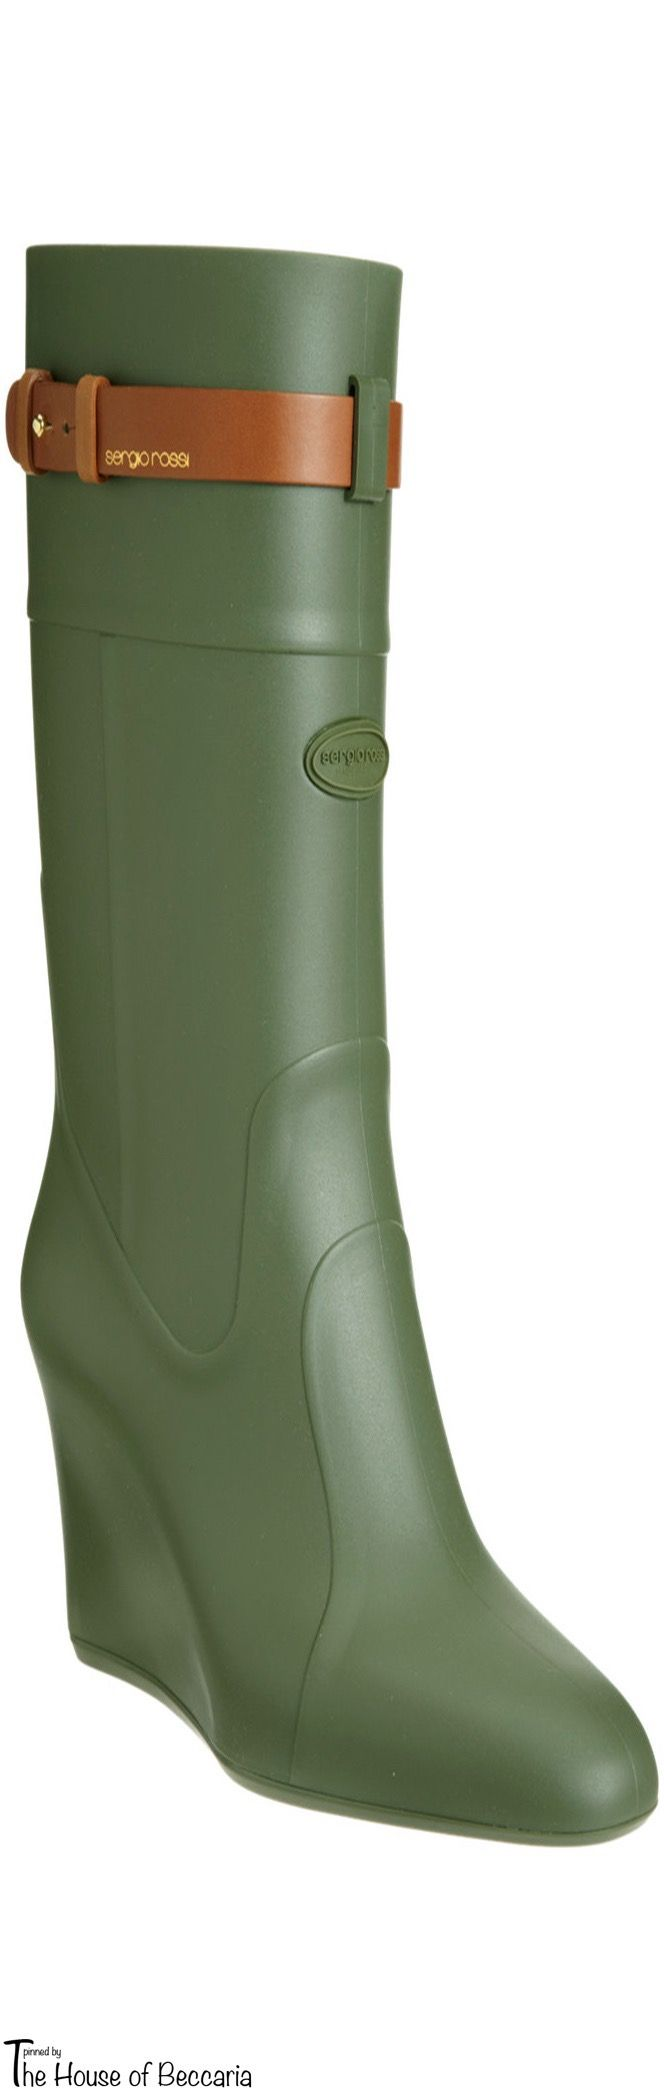 ~Sergio Rossi Wedge Hunting Boot | The House of Beccaria#